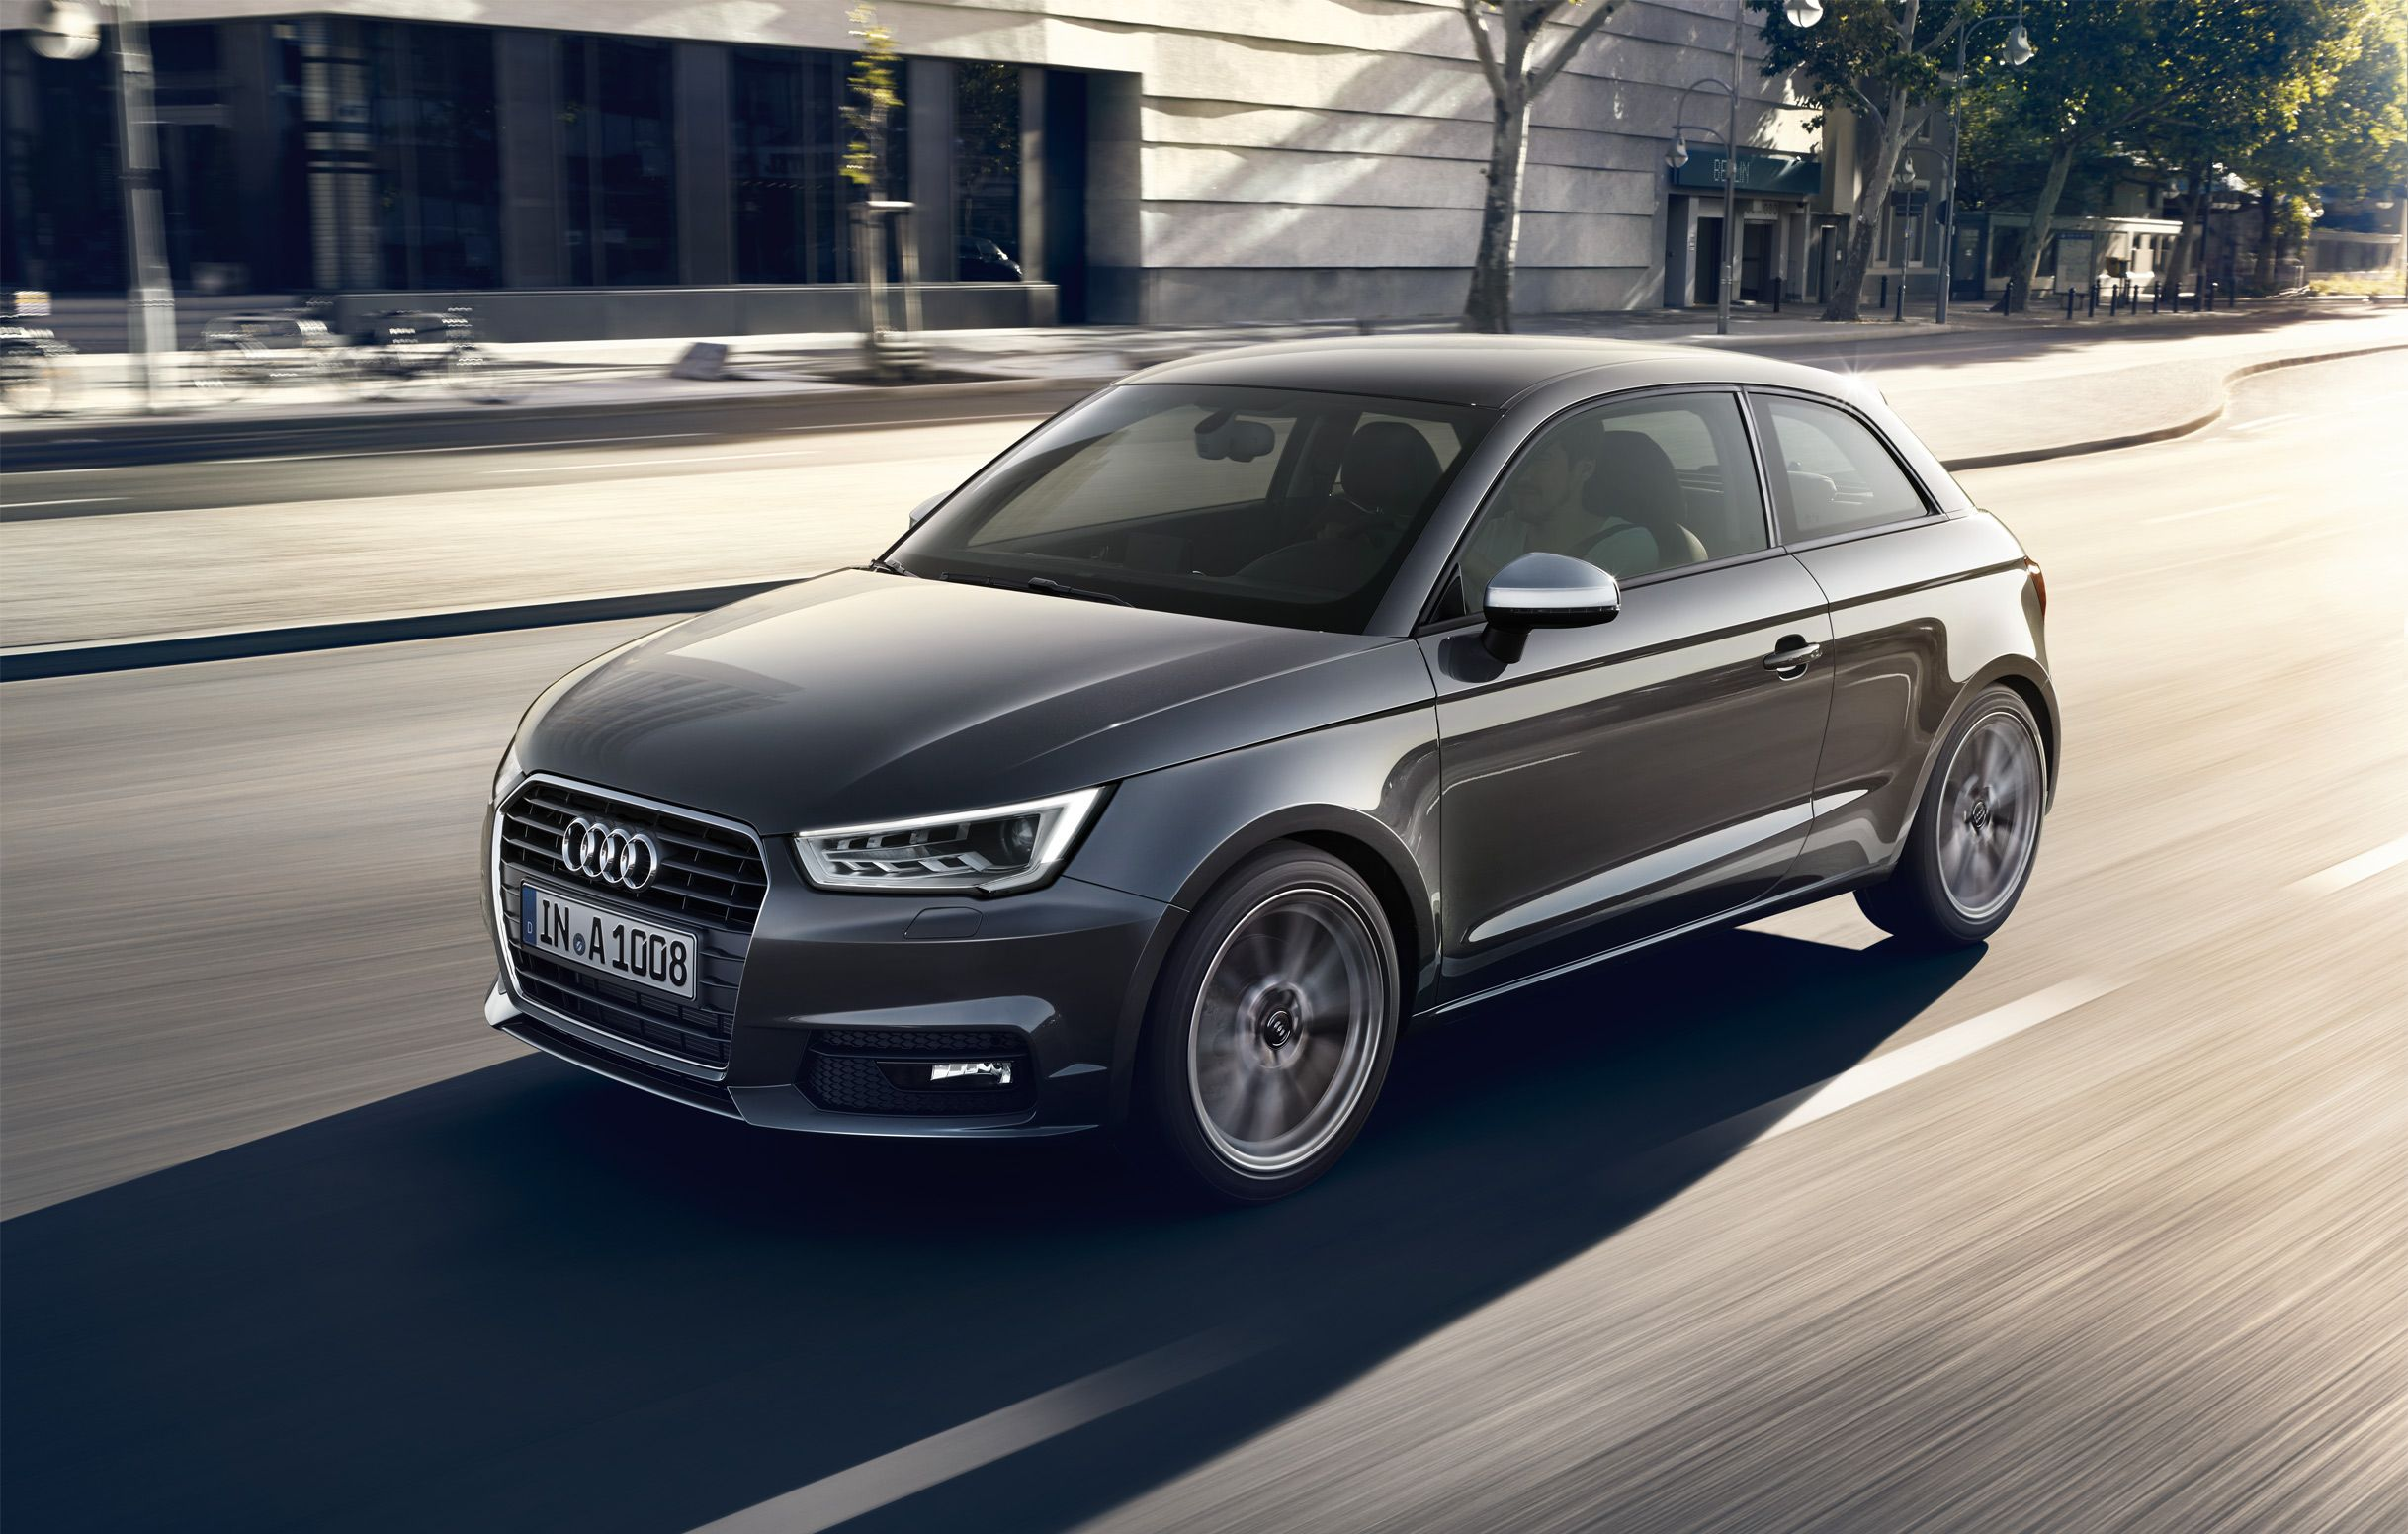 Audi A1 Contract Hire Call Us For Best Prices Audi A1 Audi